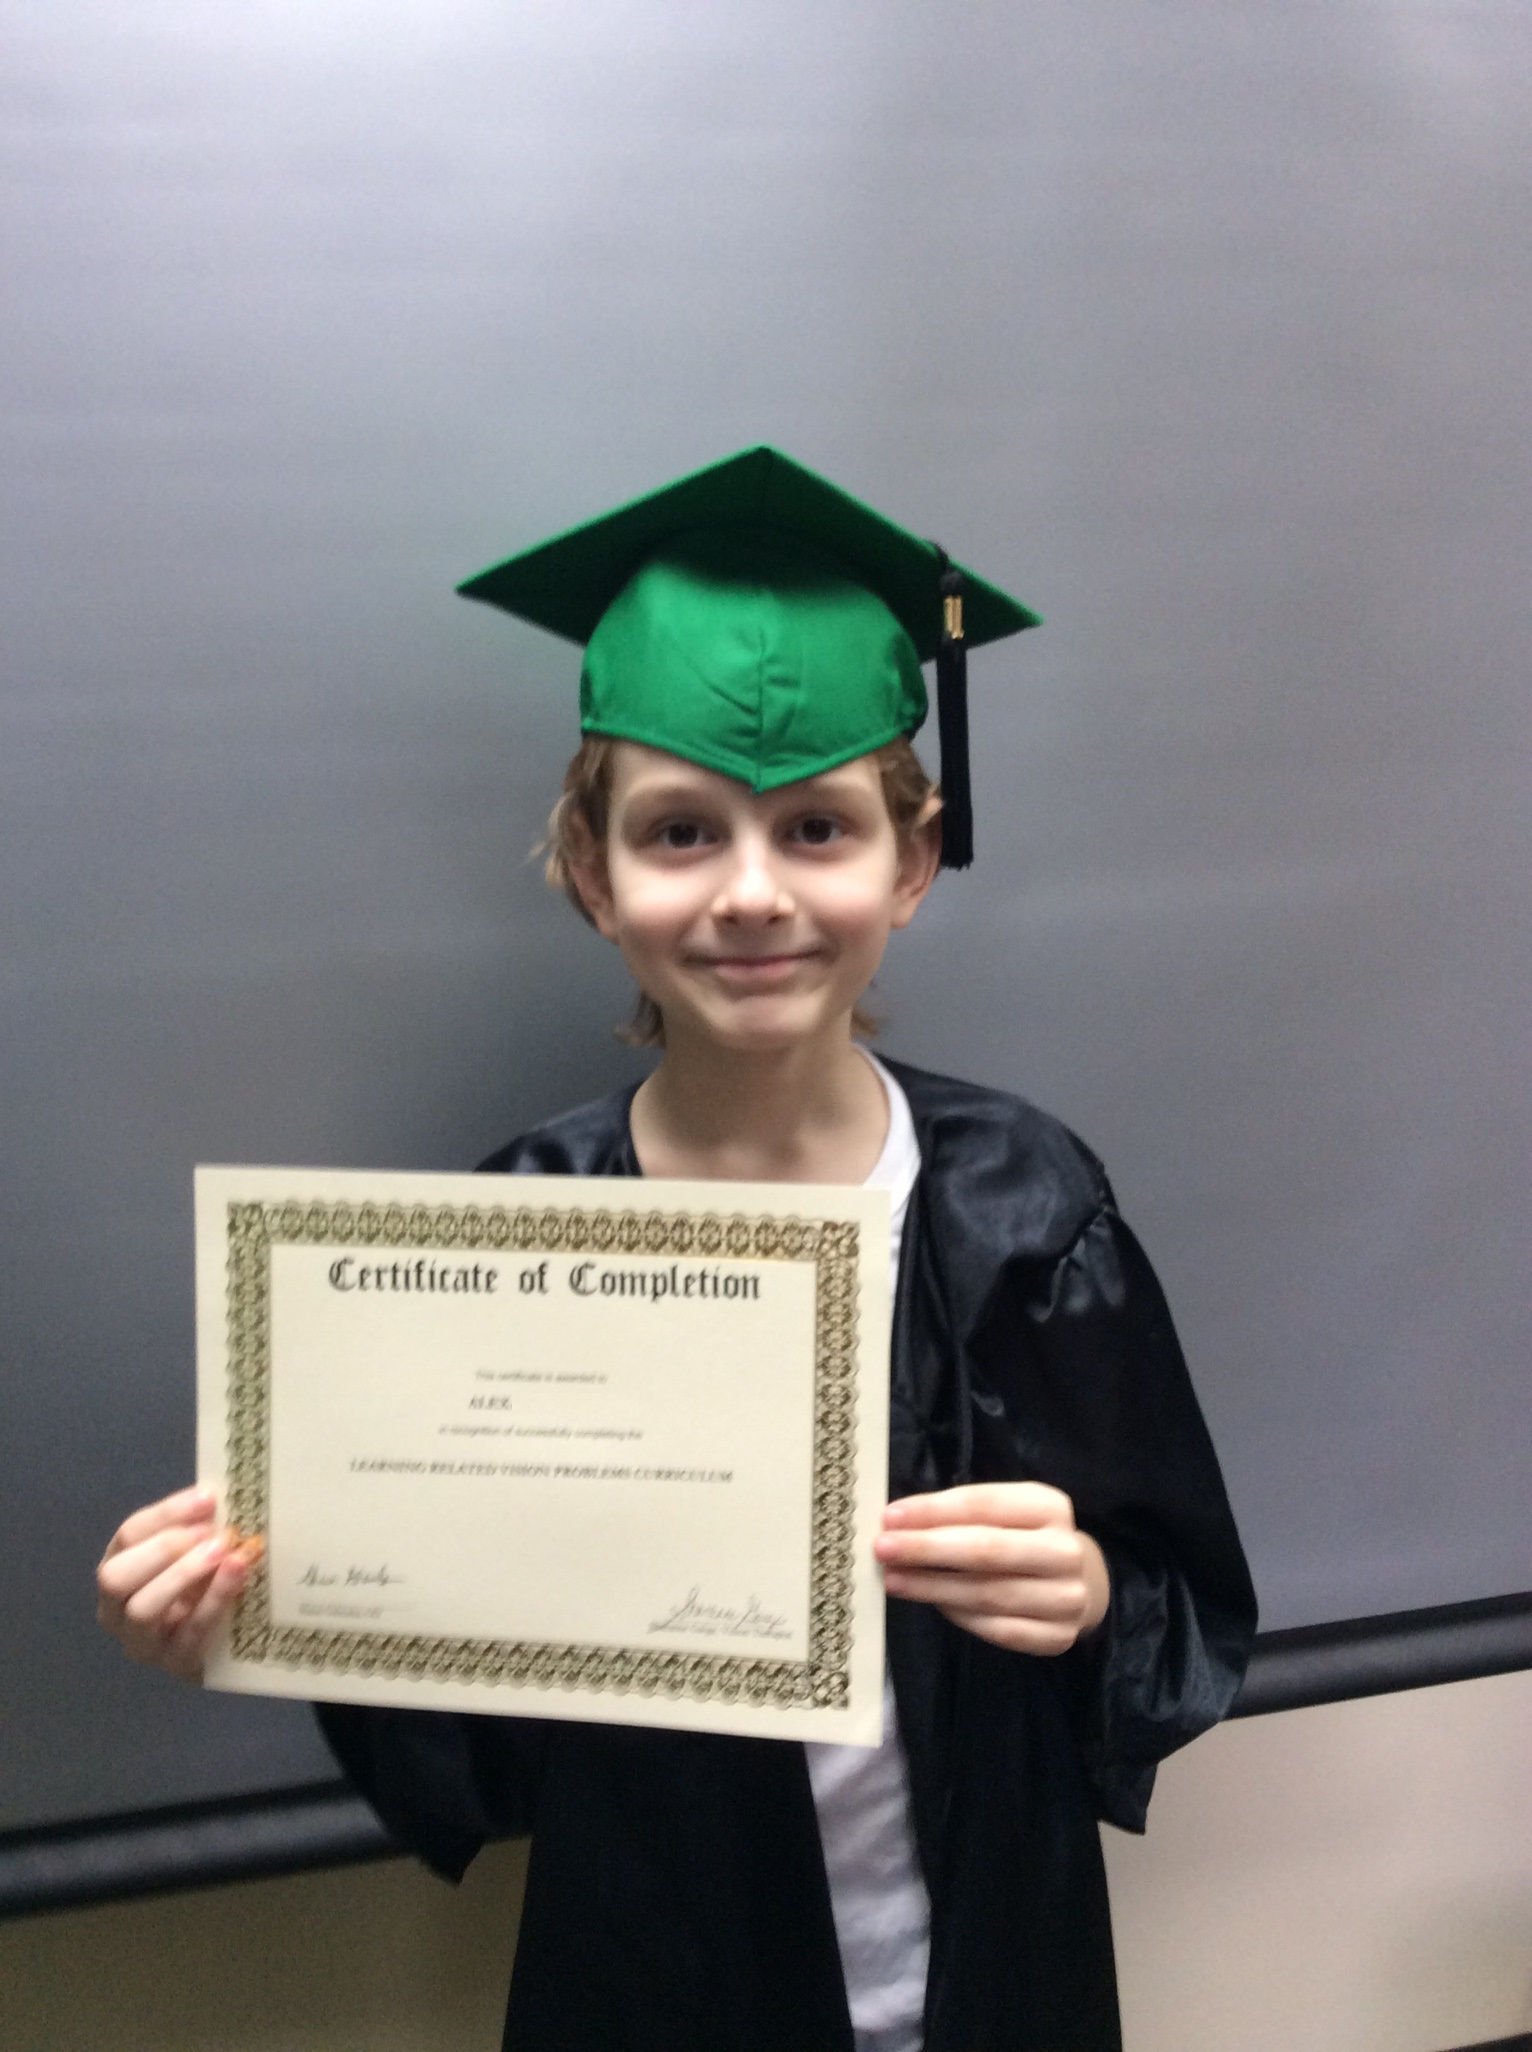 Our vision therapy graduate Alex